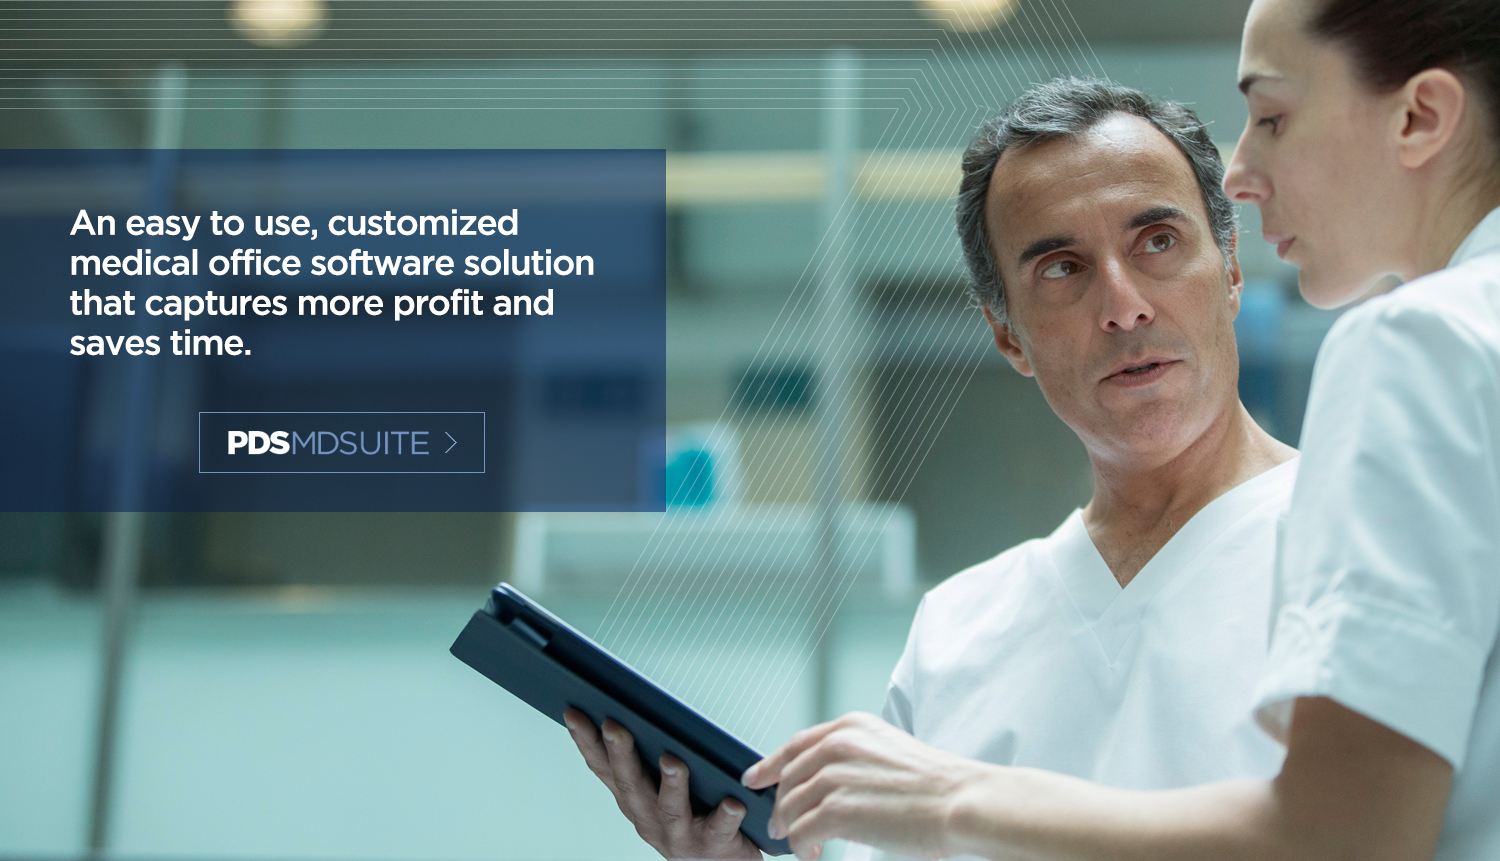 An easy to use, customized medical office software solution that captures more profit and saves time.